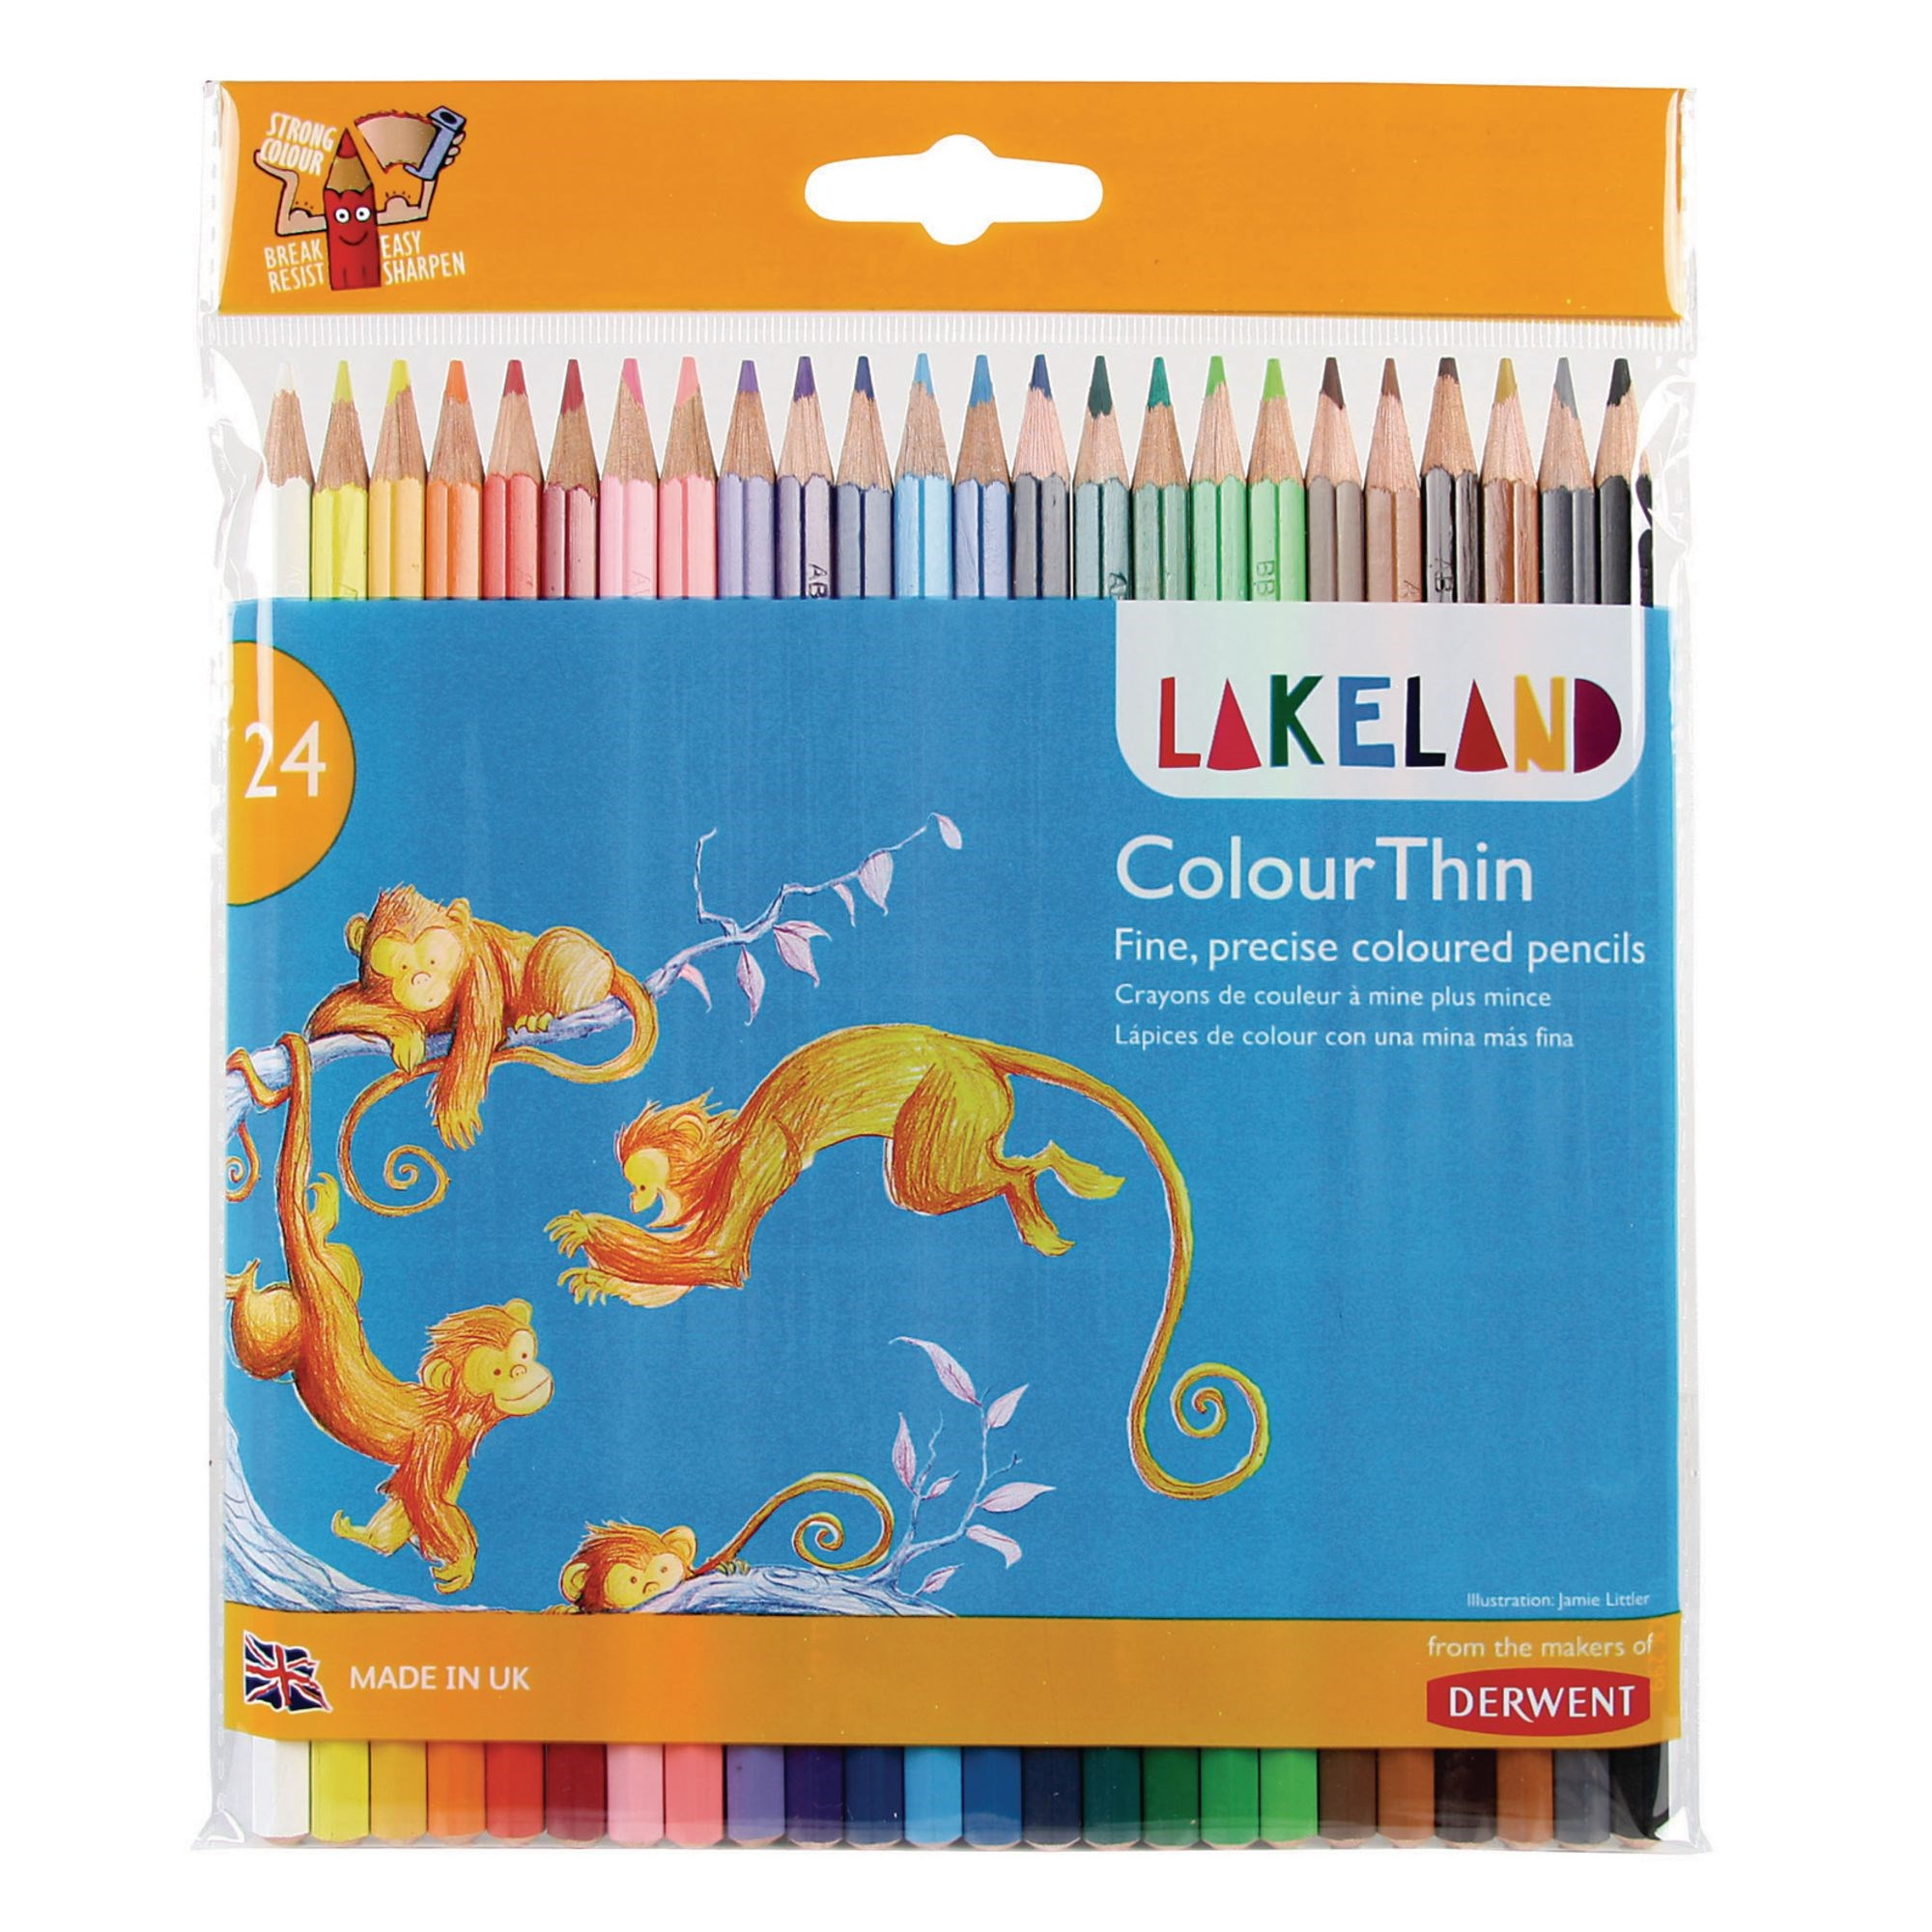 Lakeland Colourthin Fine Coloured Pencils - Assorted - Pack of 24